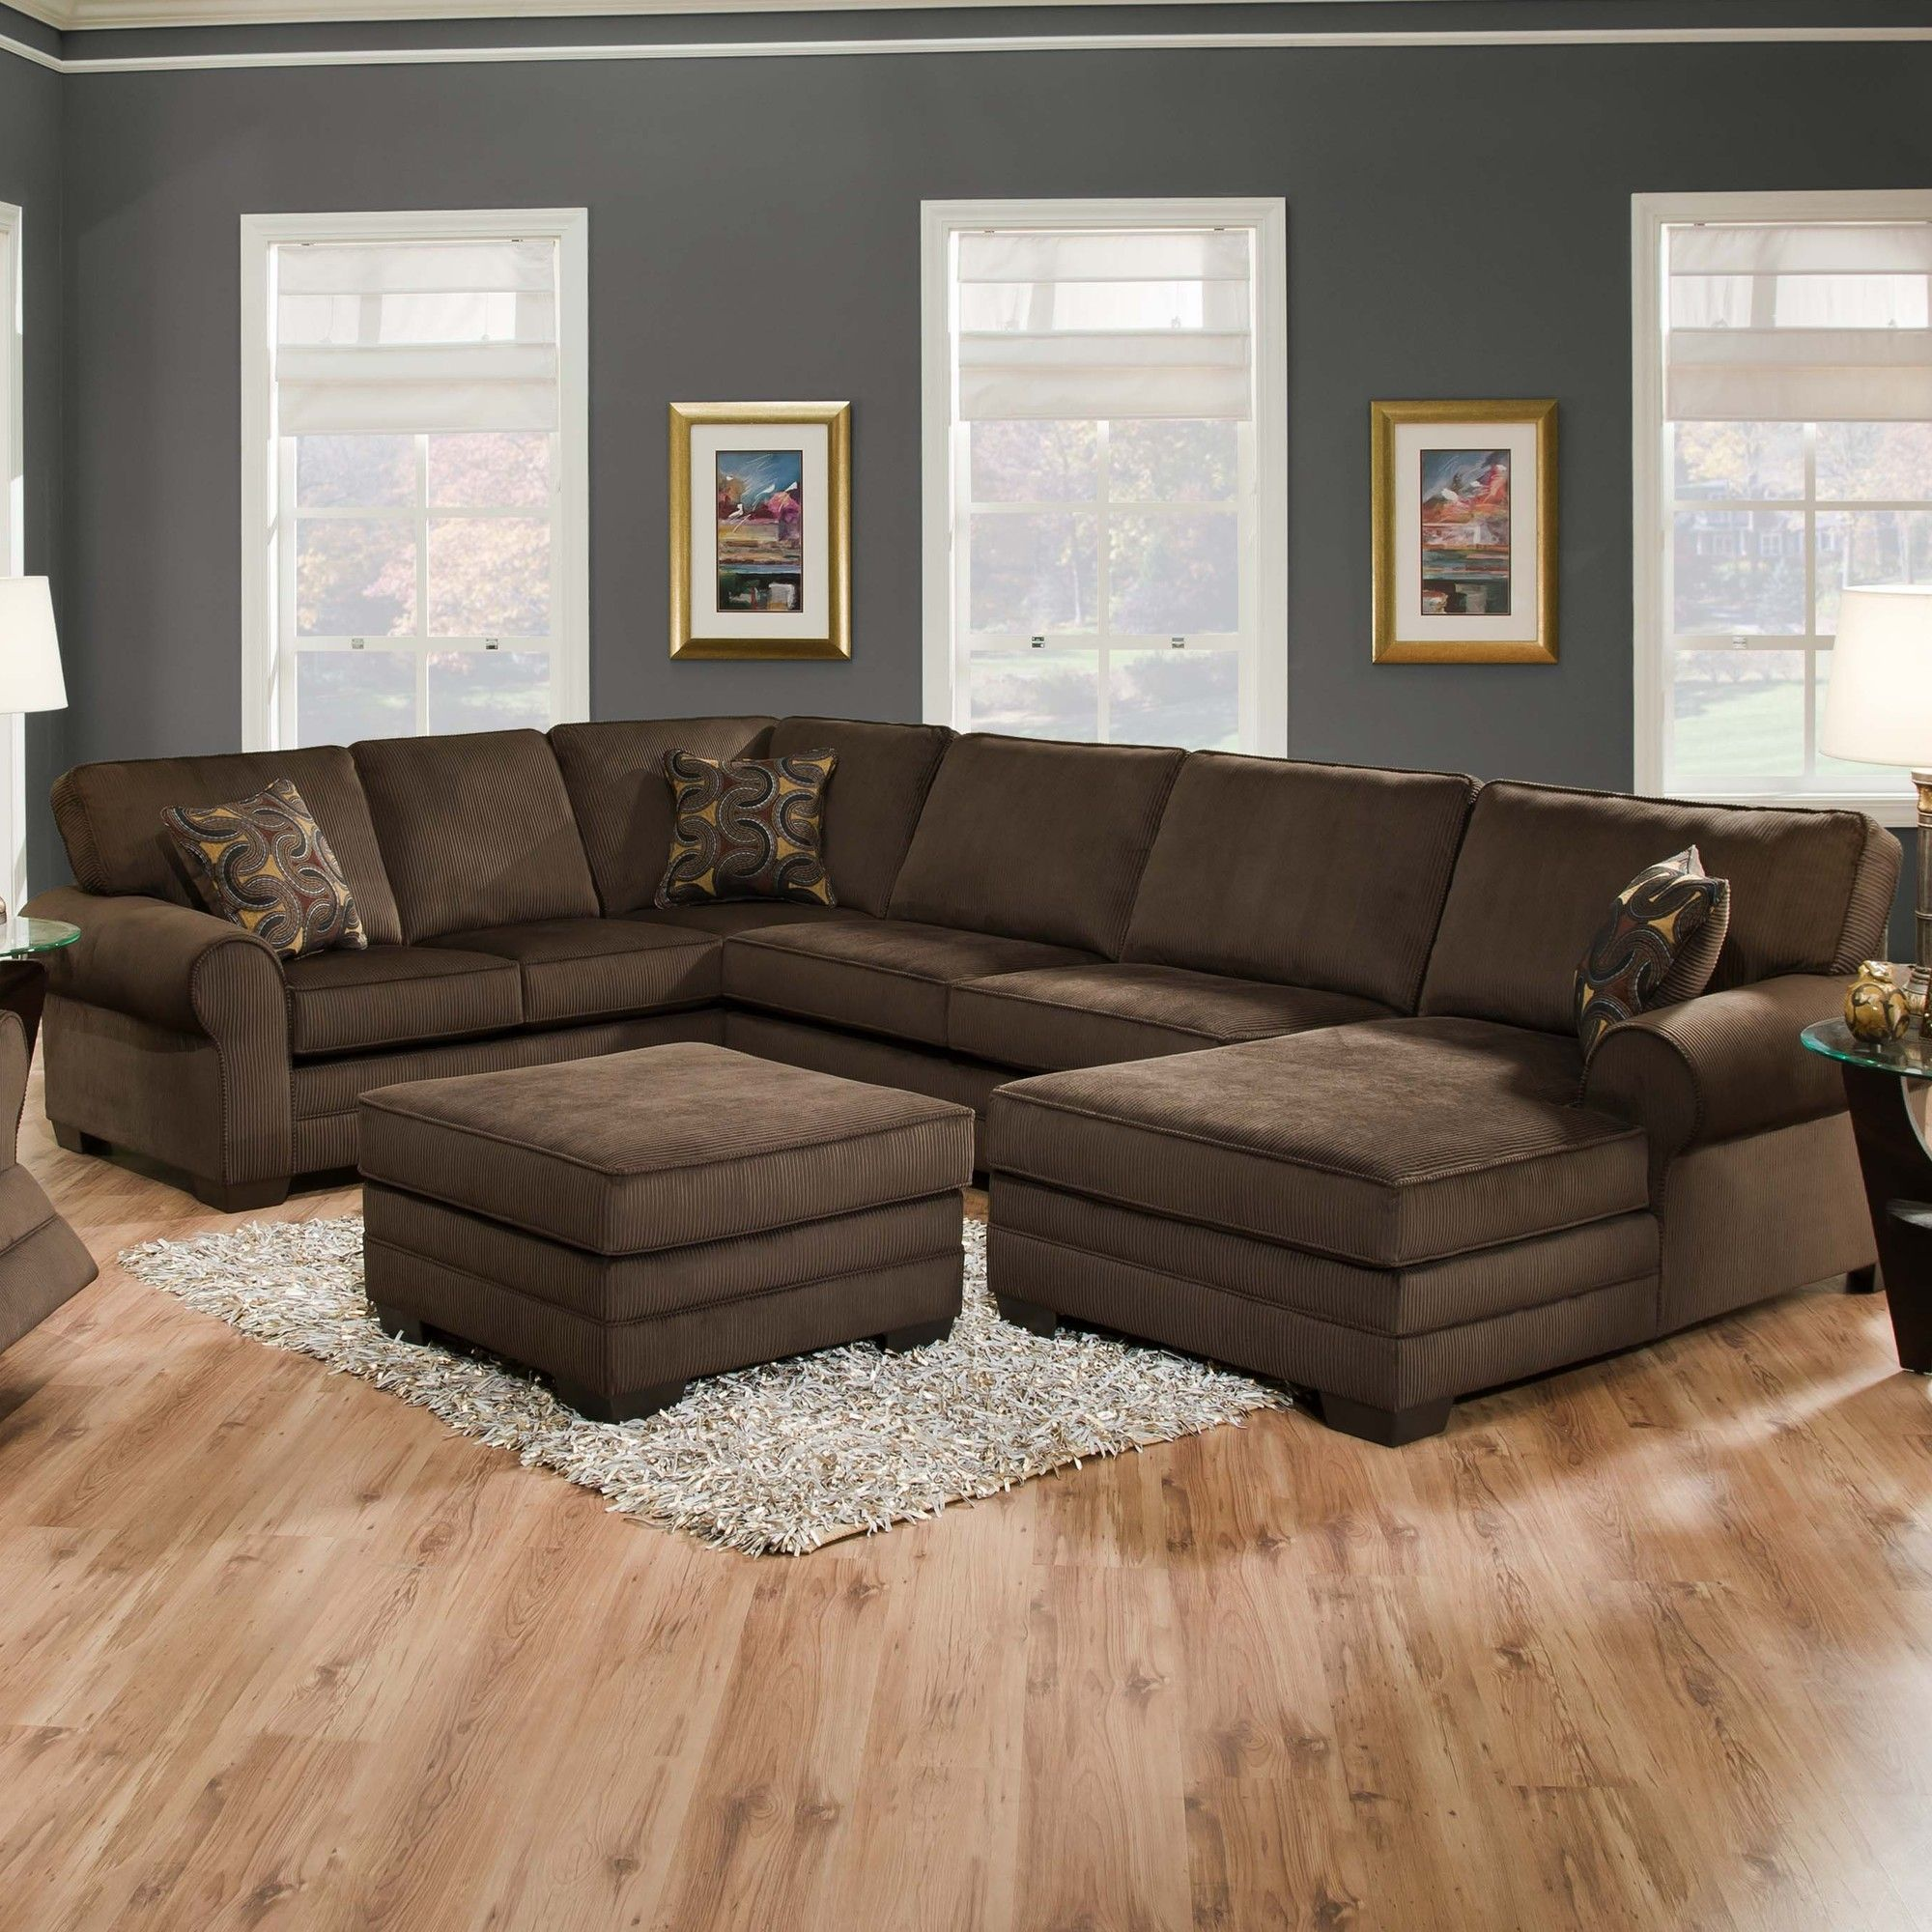 Deluxe Sectional Wayfair Stuffs